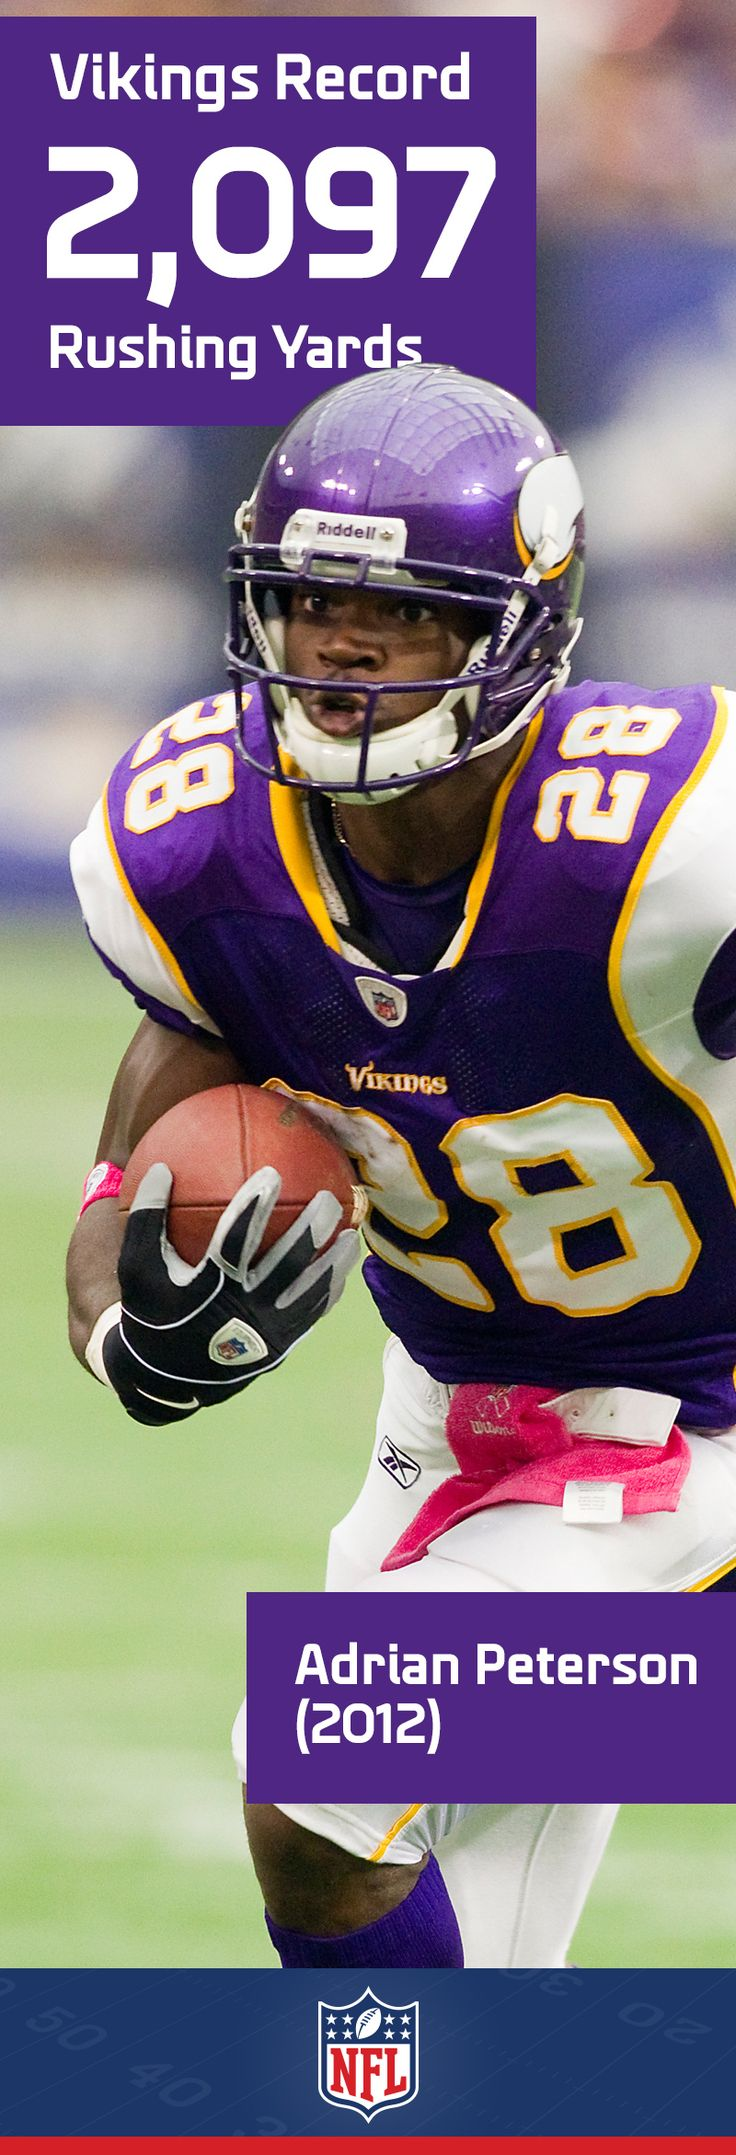 Bringing Adrian Peterson to the ground is no easy task and his Vikings rushing record was only 9 shy of the all-time NFL record.